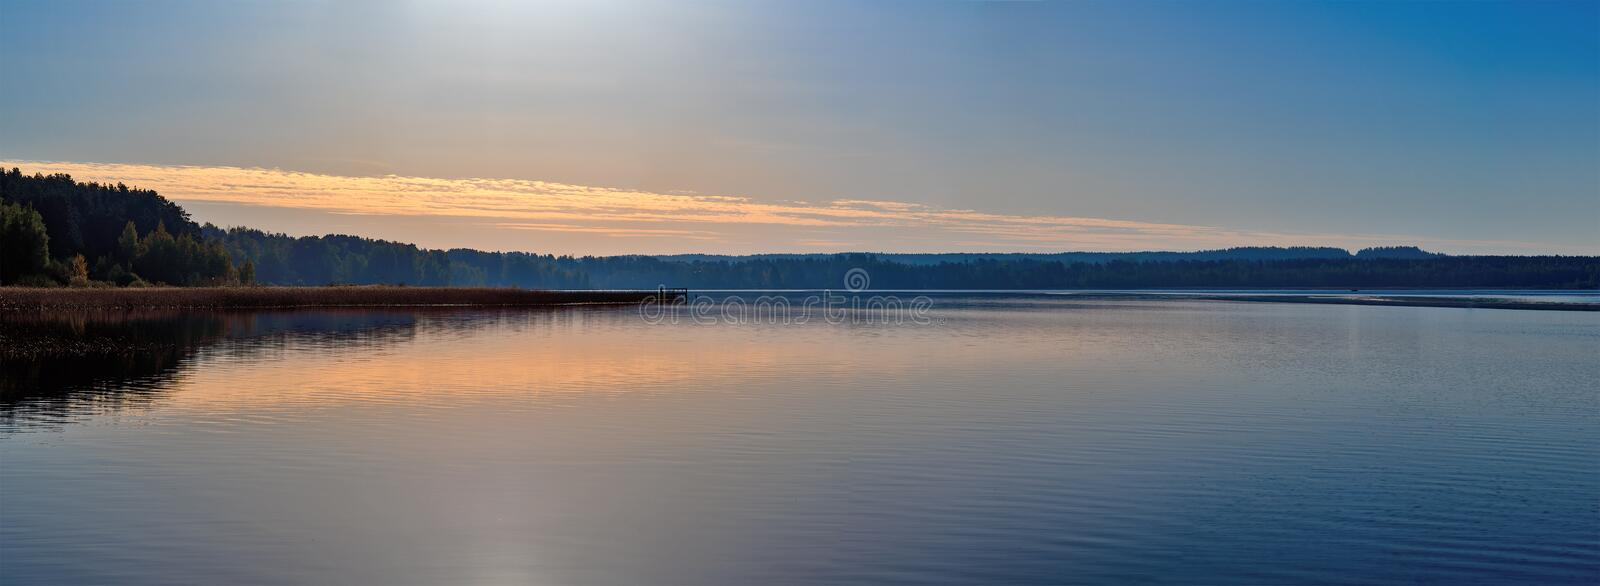 Panorama of a magnificent sunset on the lake, with a Golden-blue color stock image